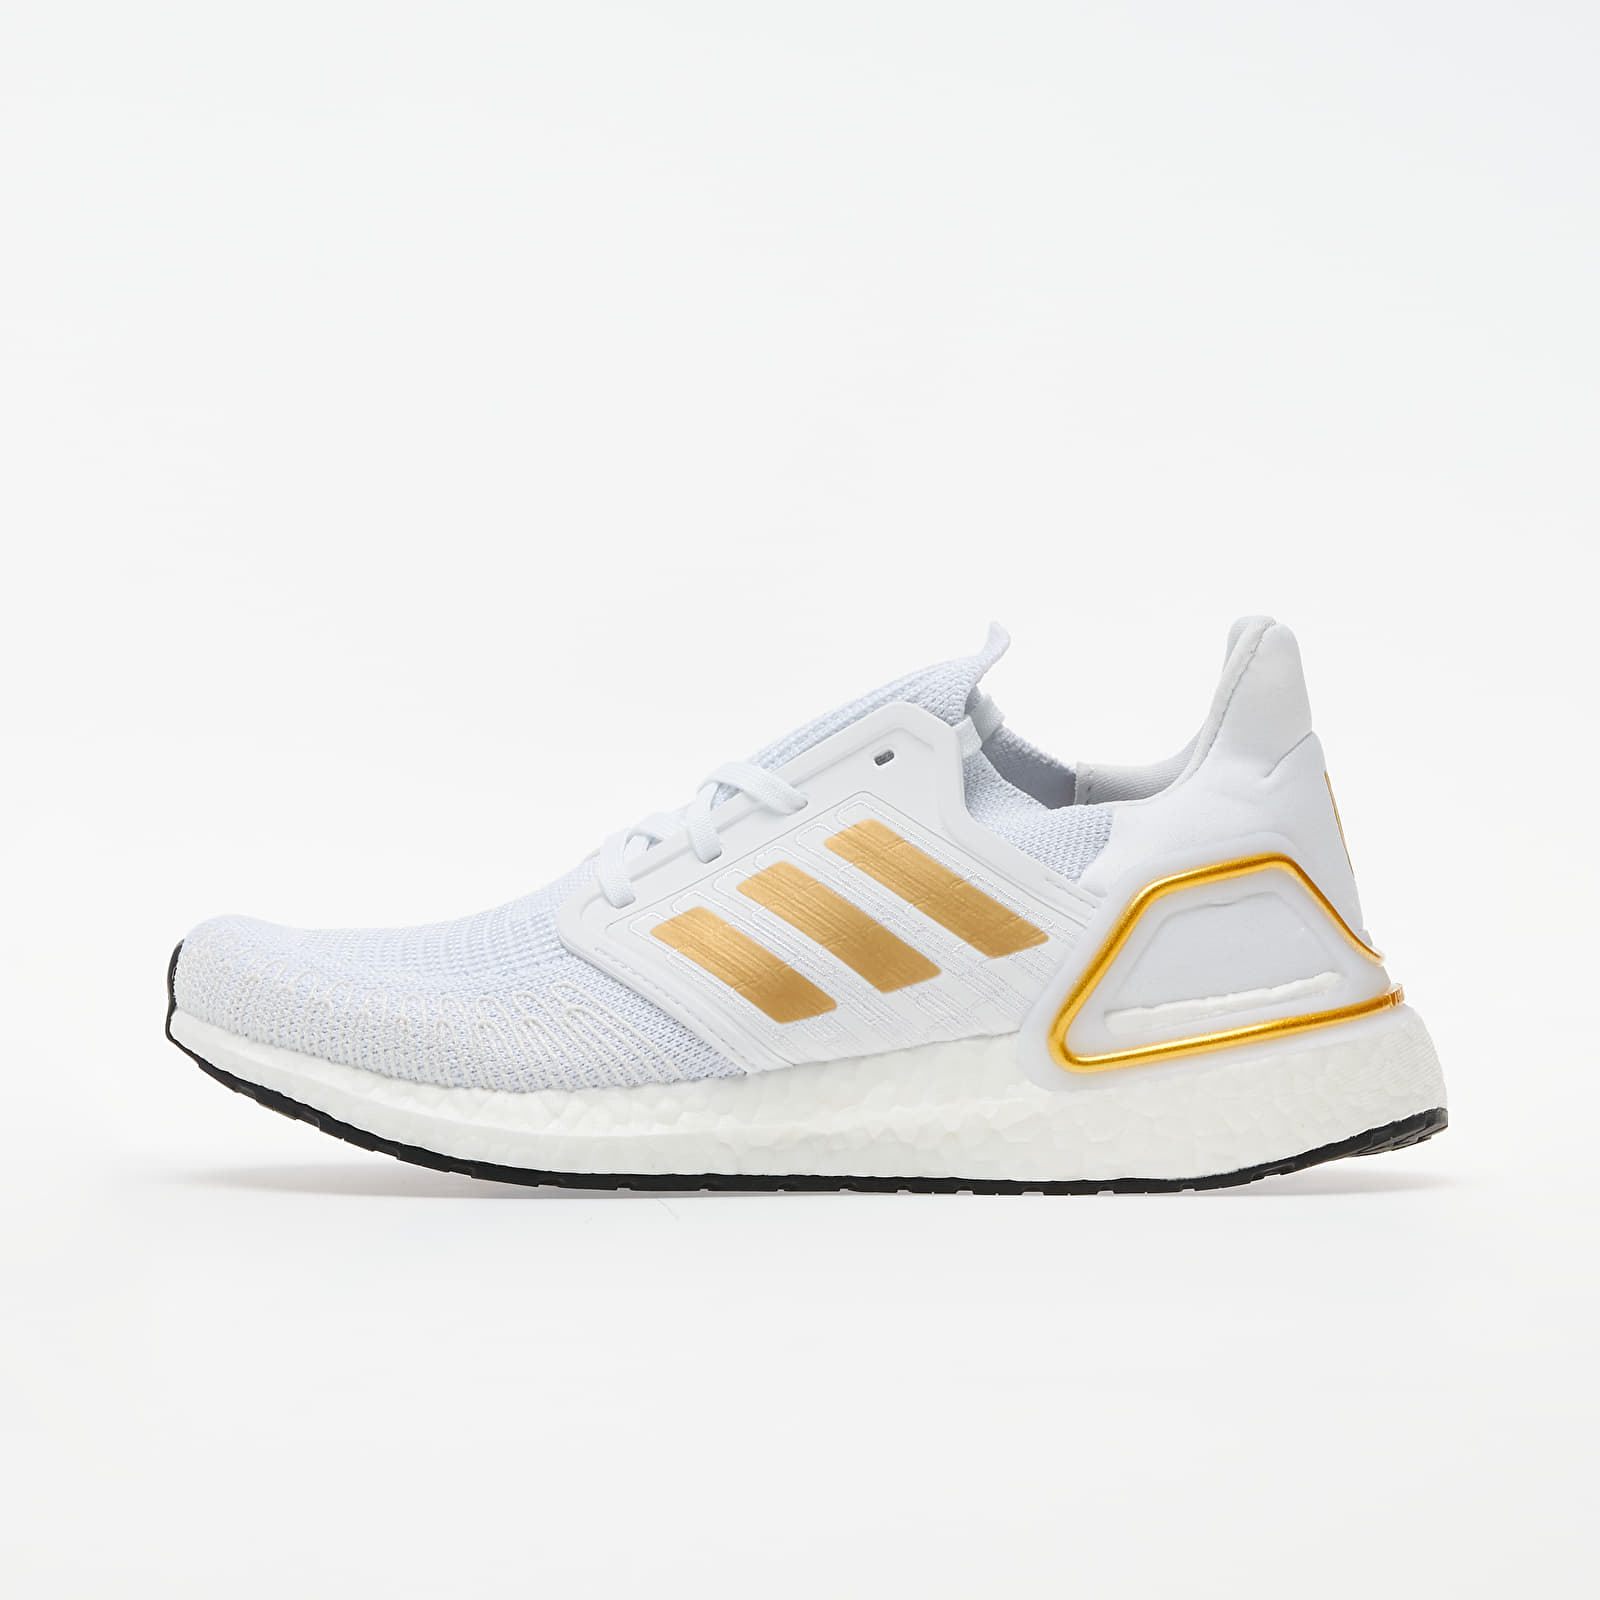 Chaussures et baskets femme adidas UltraBOOST 20 W Ftw White/ Gold Metalic/ Core Black